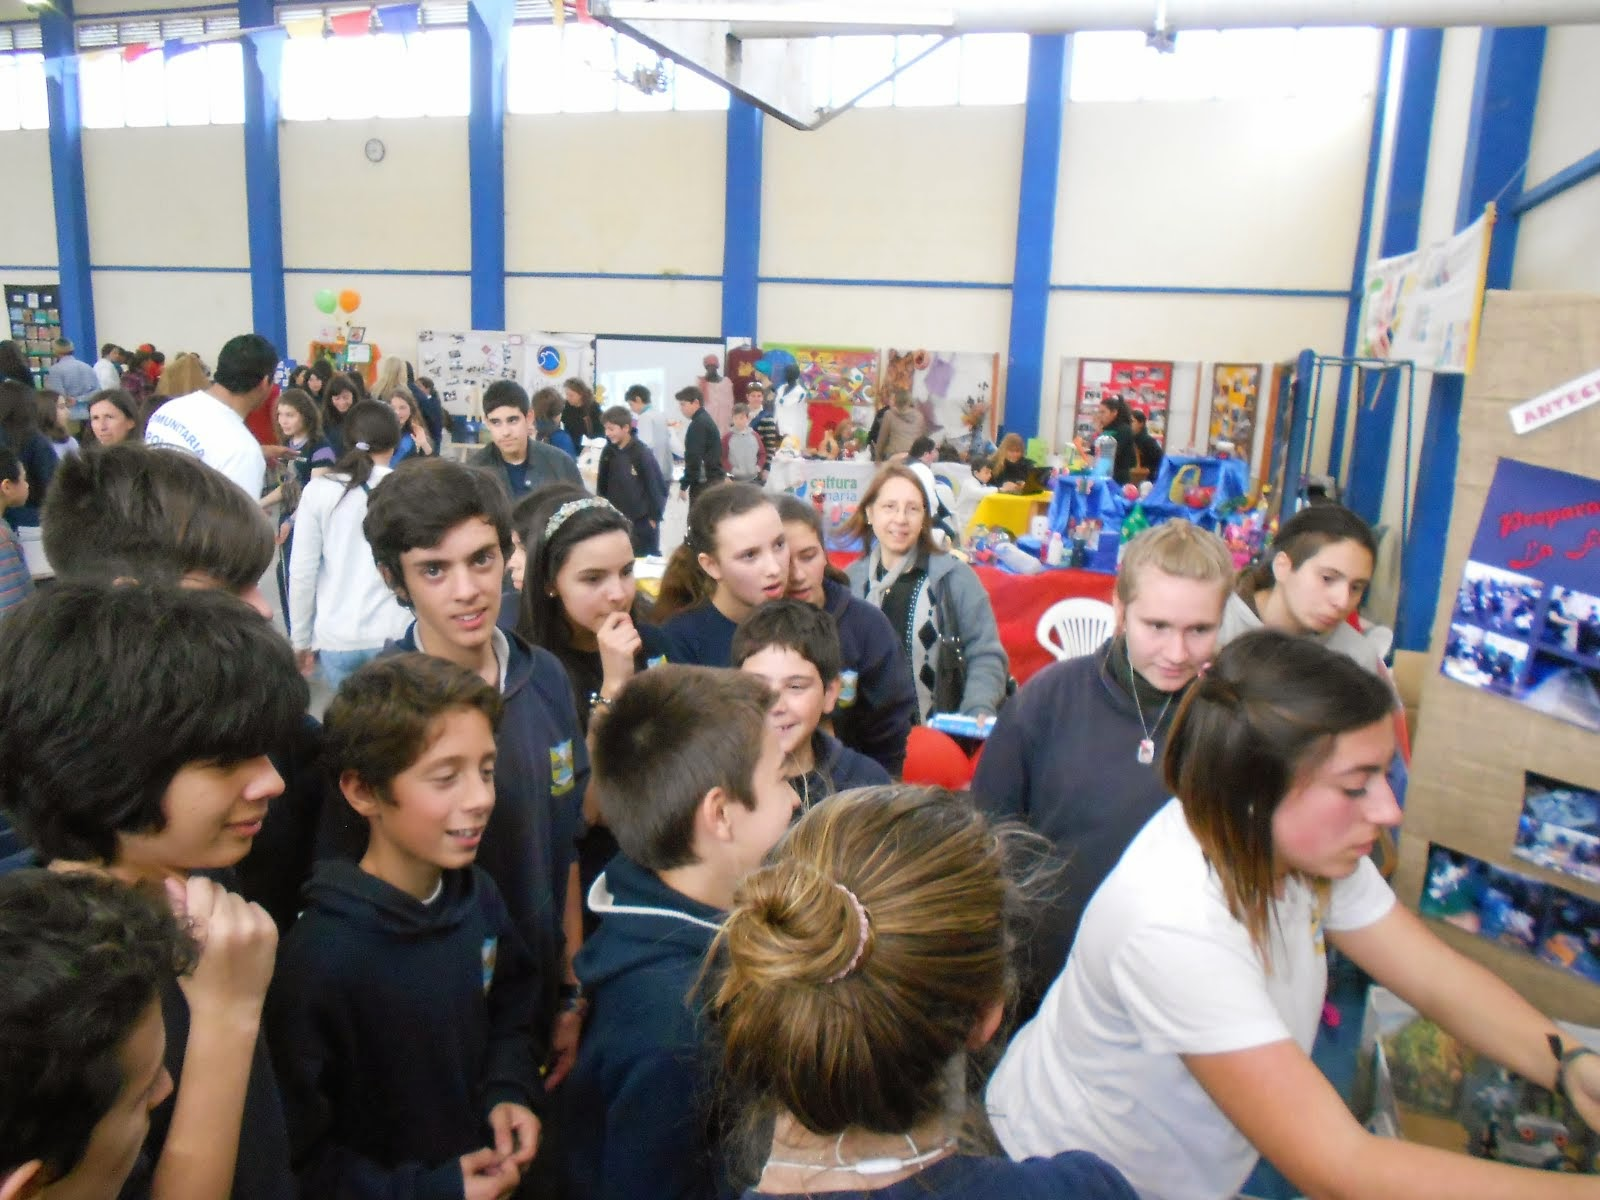 FERIA EDUCATIVA LA COSTA INCLUYE